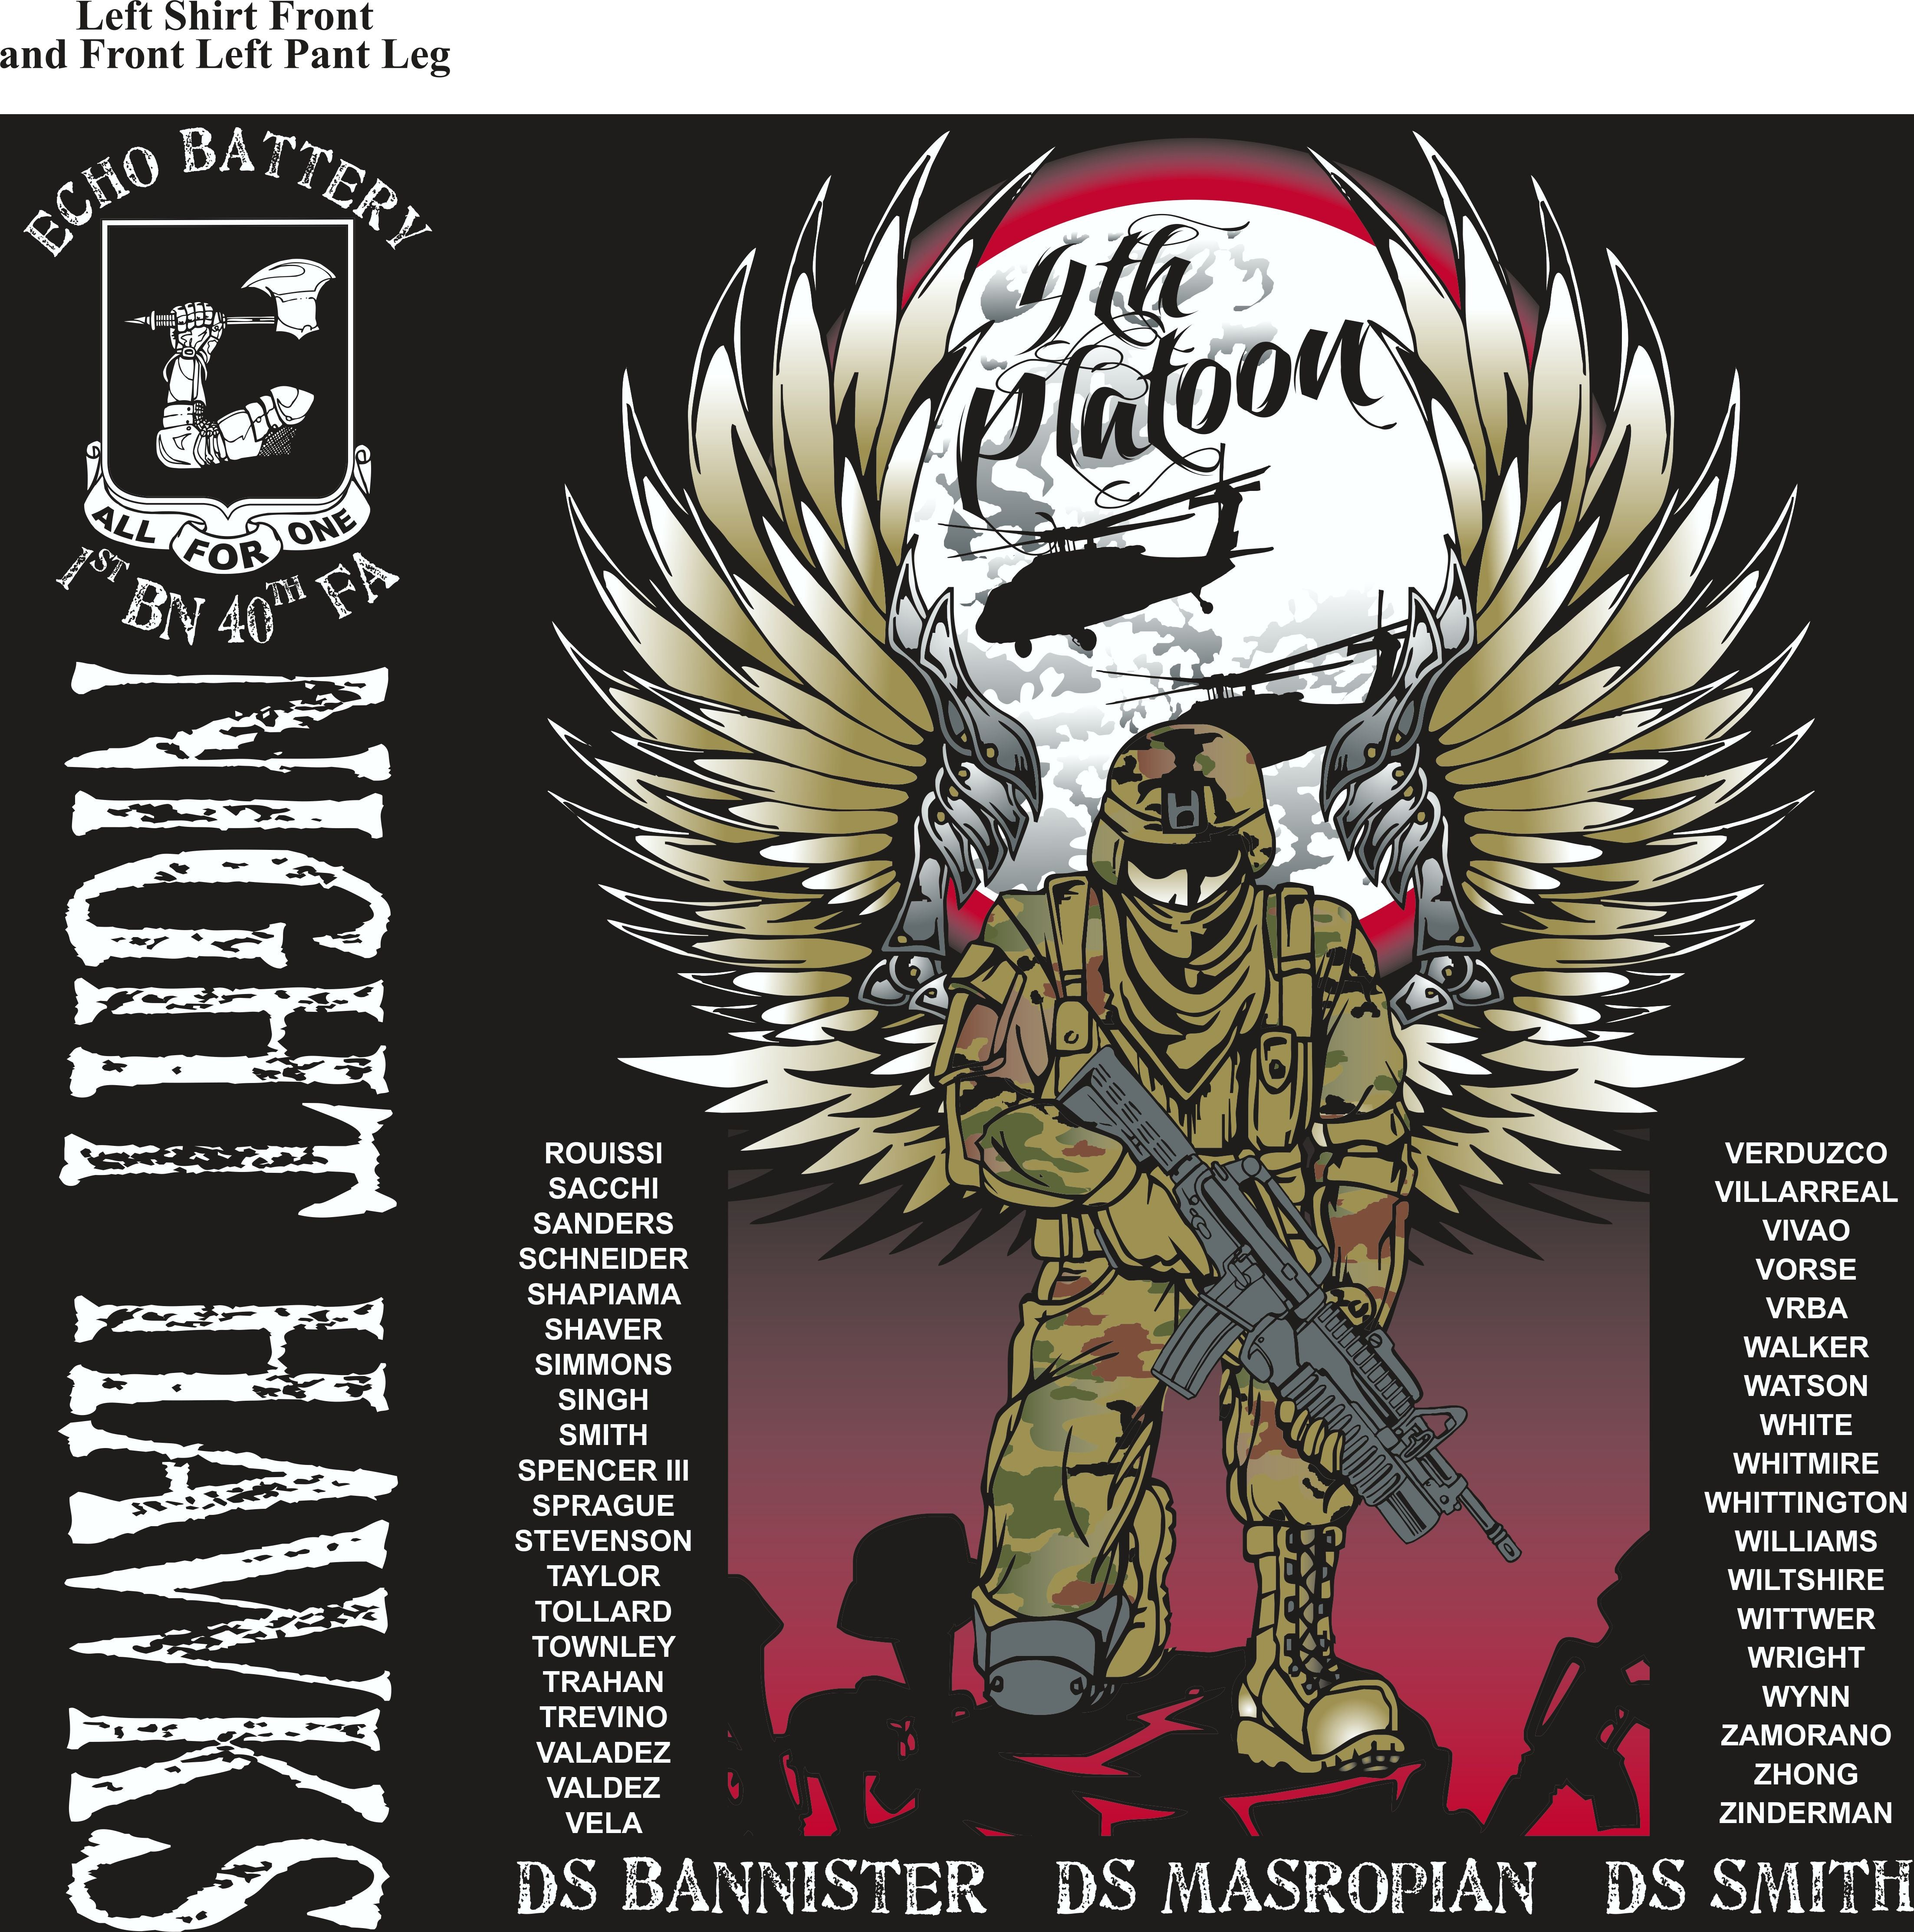 Platoon Shirts (2nd generation print) ECHO 1st 40th NIGHT HAWKS JUNE 2018